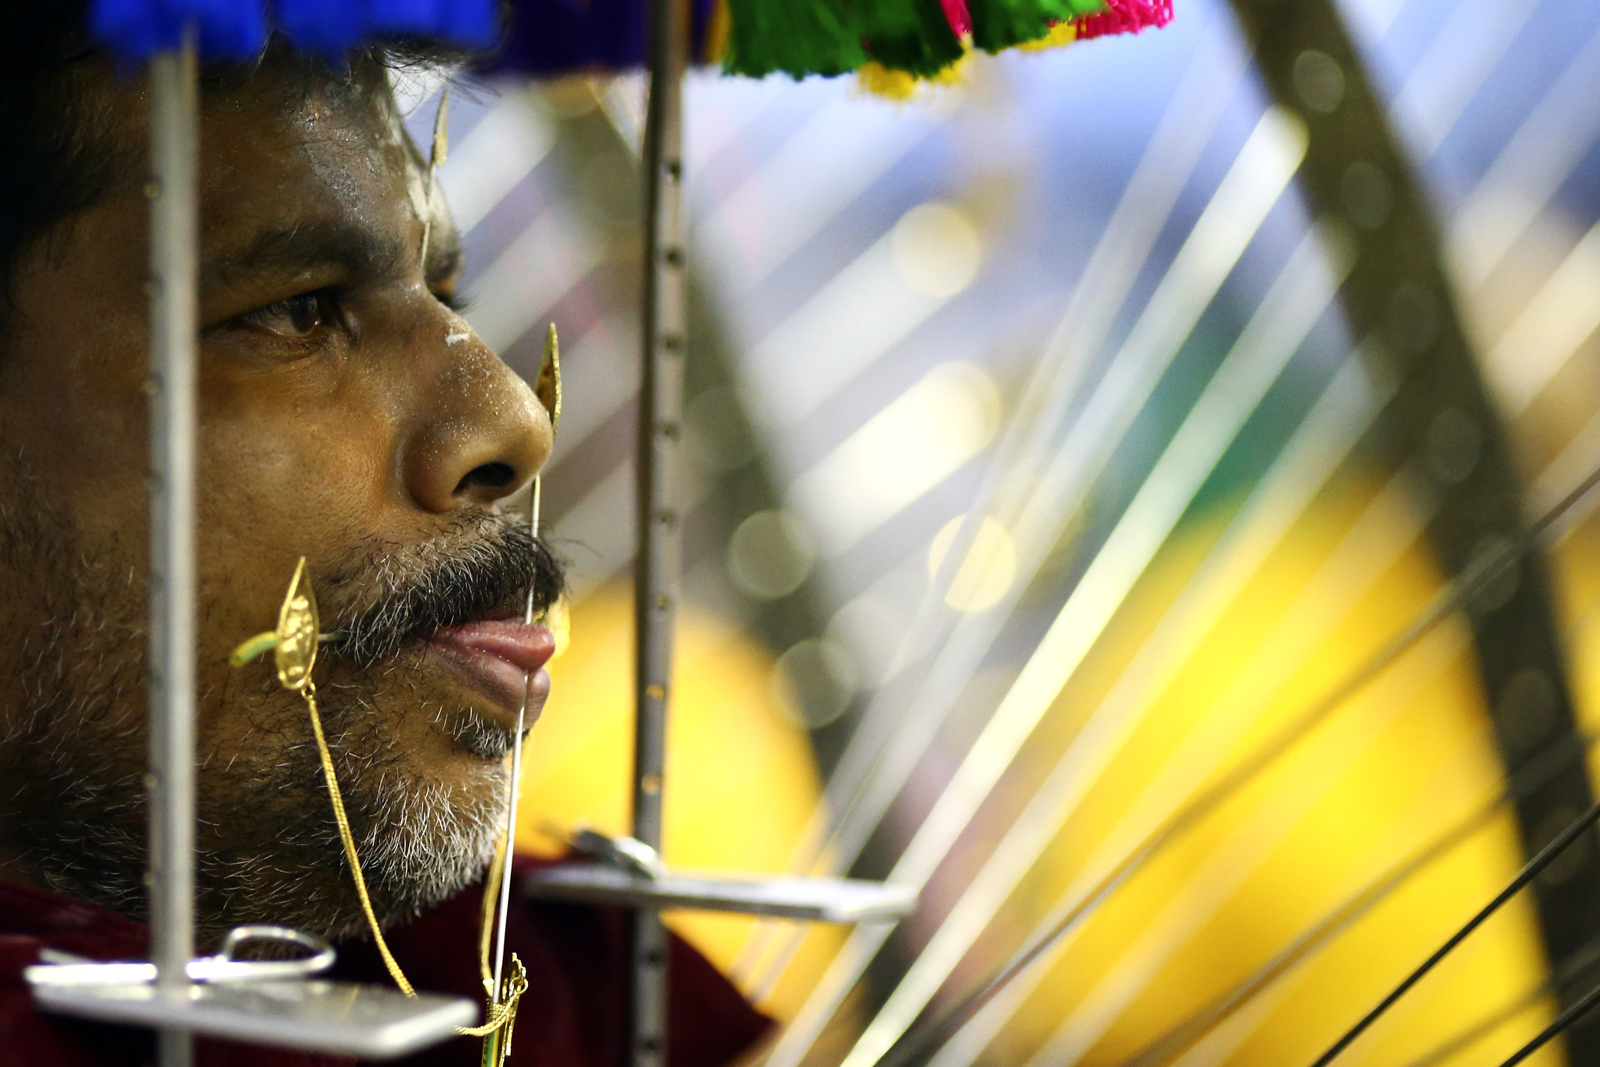 A devotee with his cheeks and tongue pierced waits to start his procession during the Thaipusam festival at the Sri Srinivasa Perumal Temple on February 9, 2017 in Singapore.